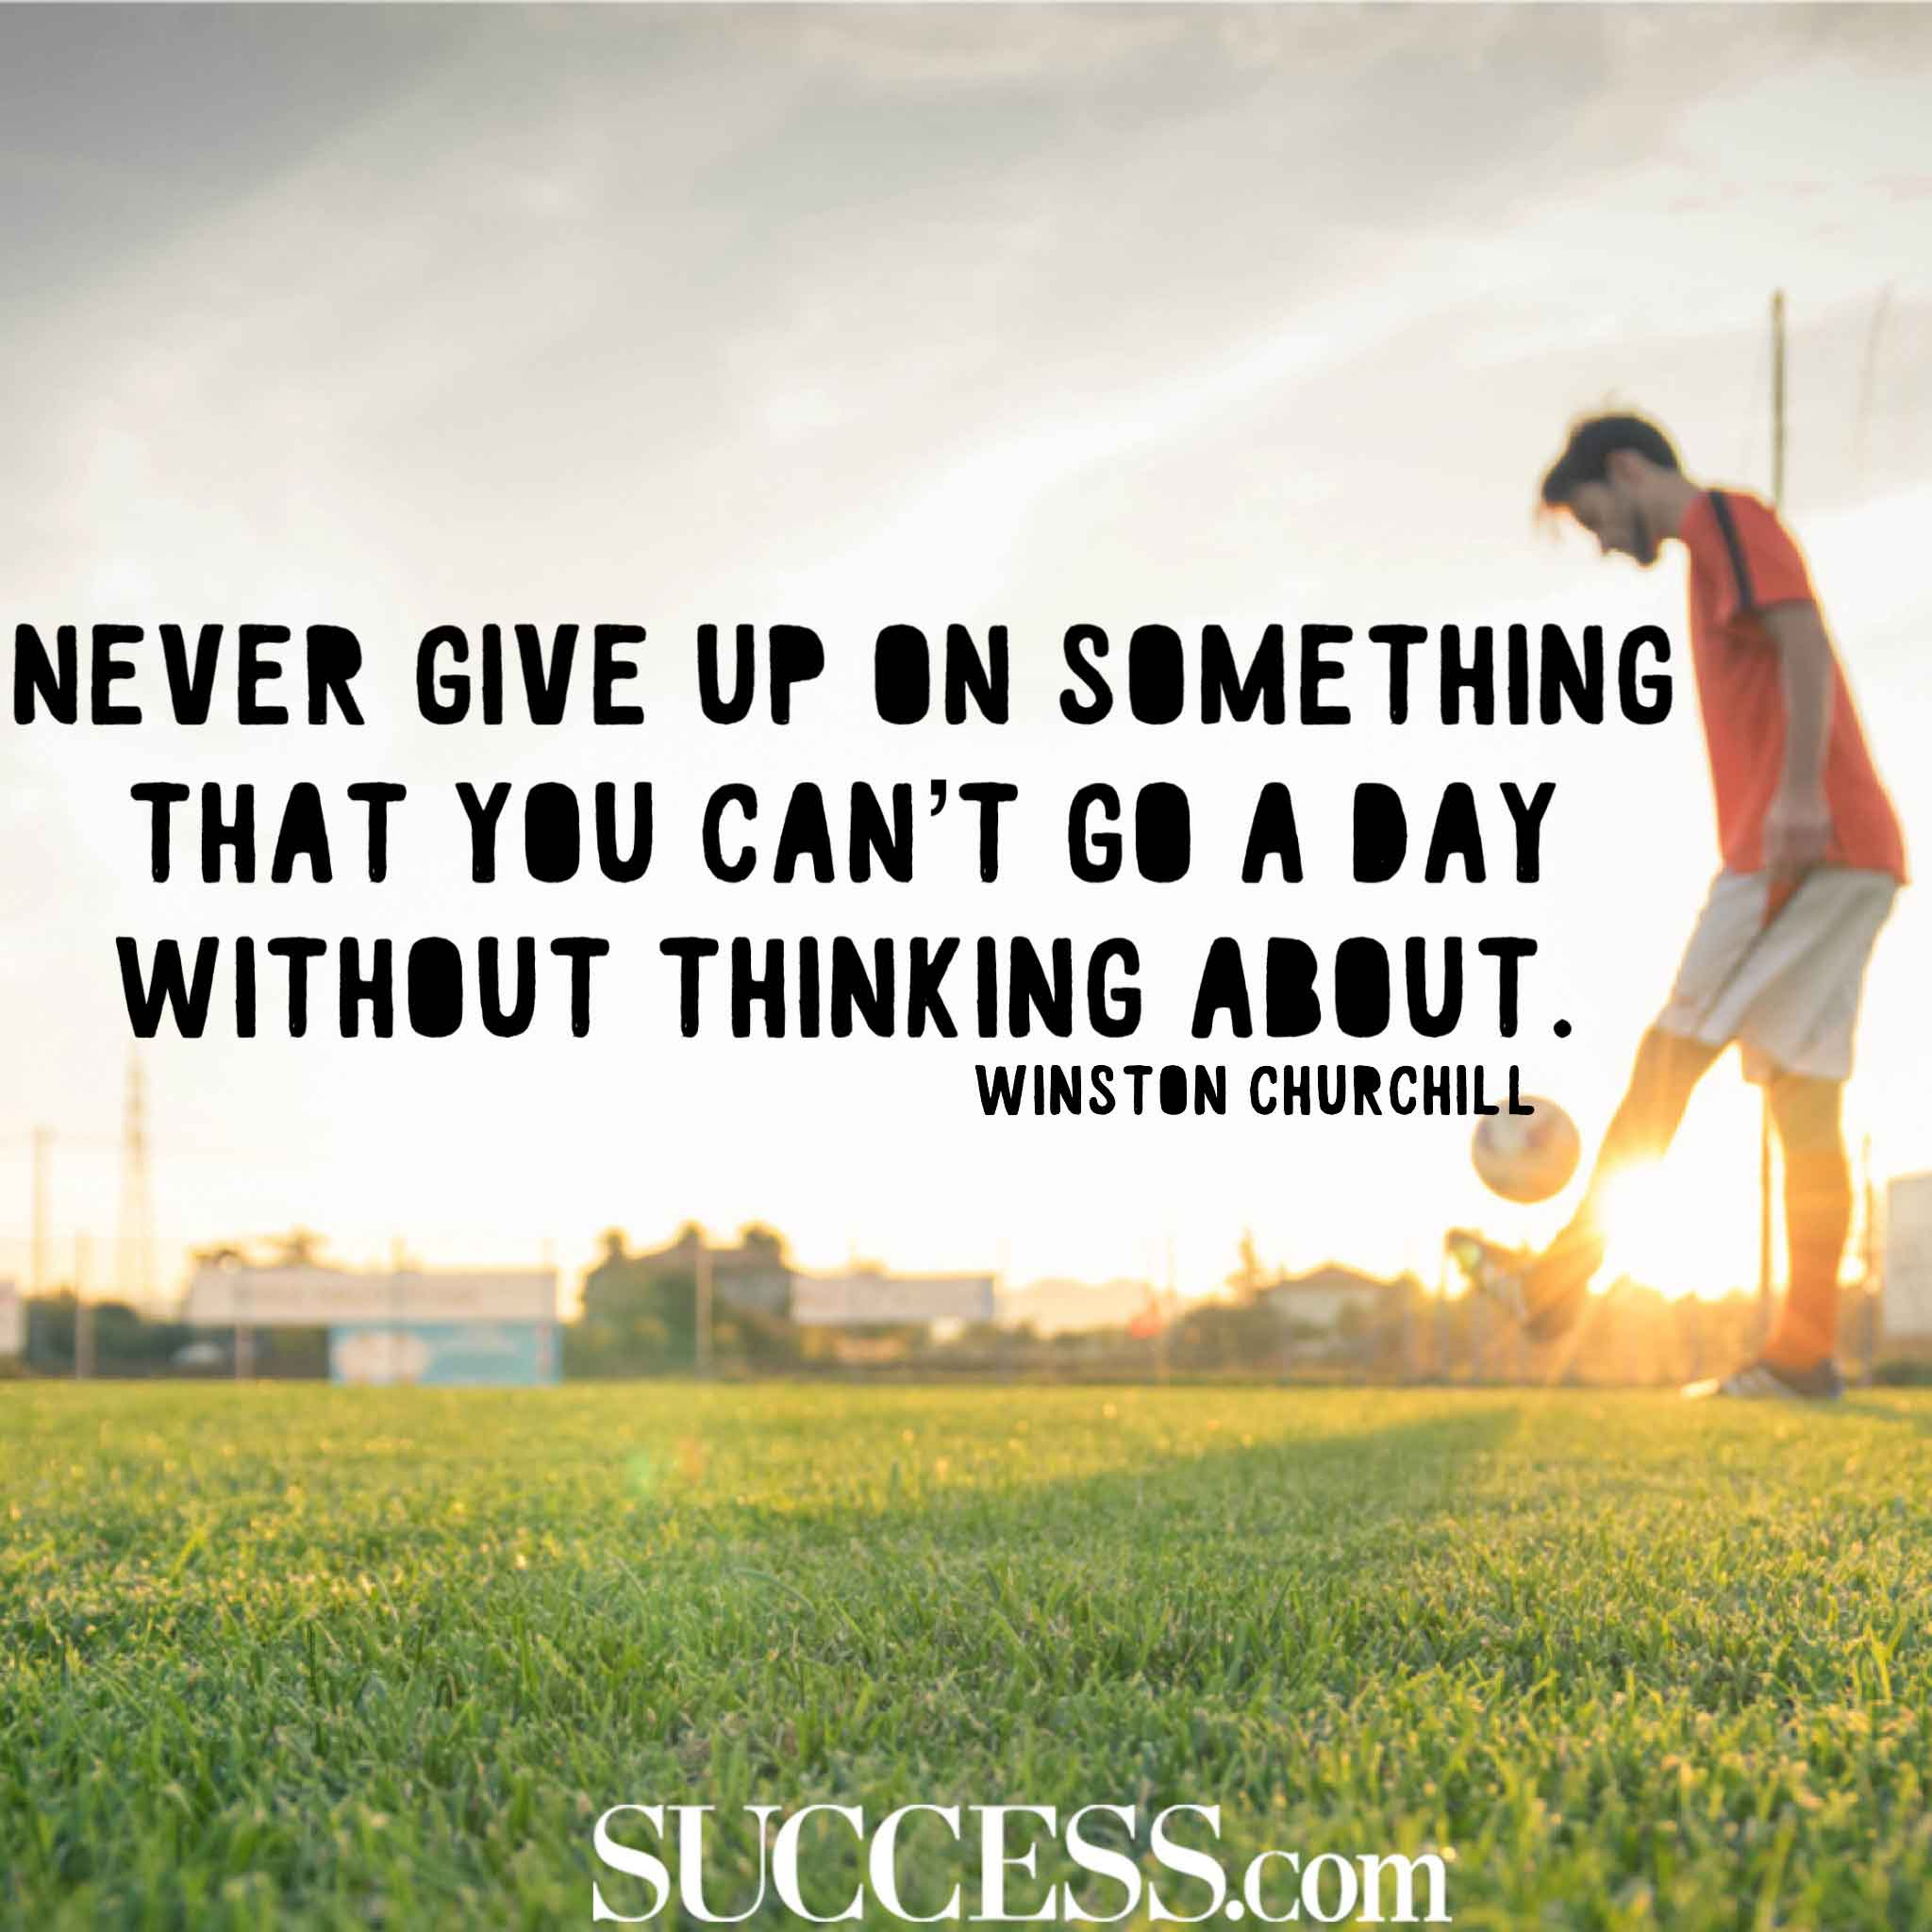 Never Give Up Quotes 15 Inspiring Quotes About Never Giving Up Never Give Up Quotes